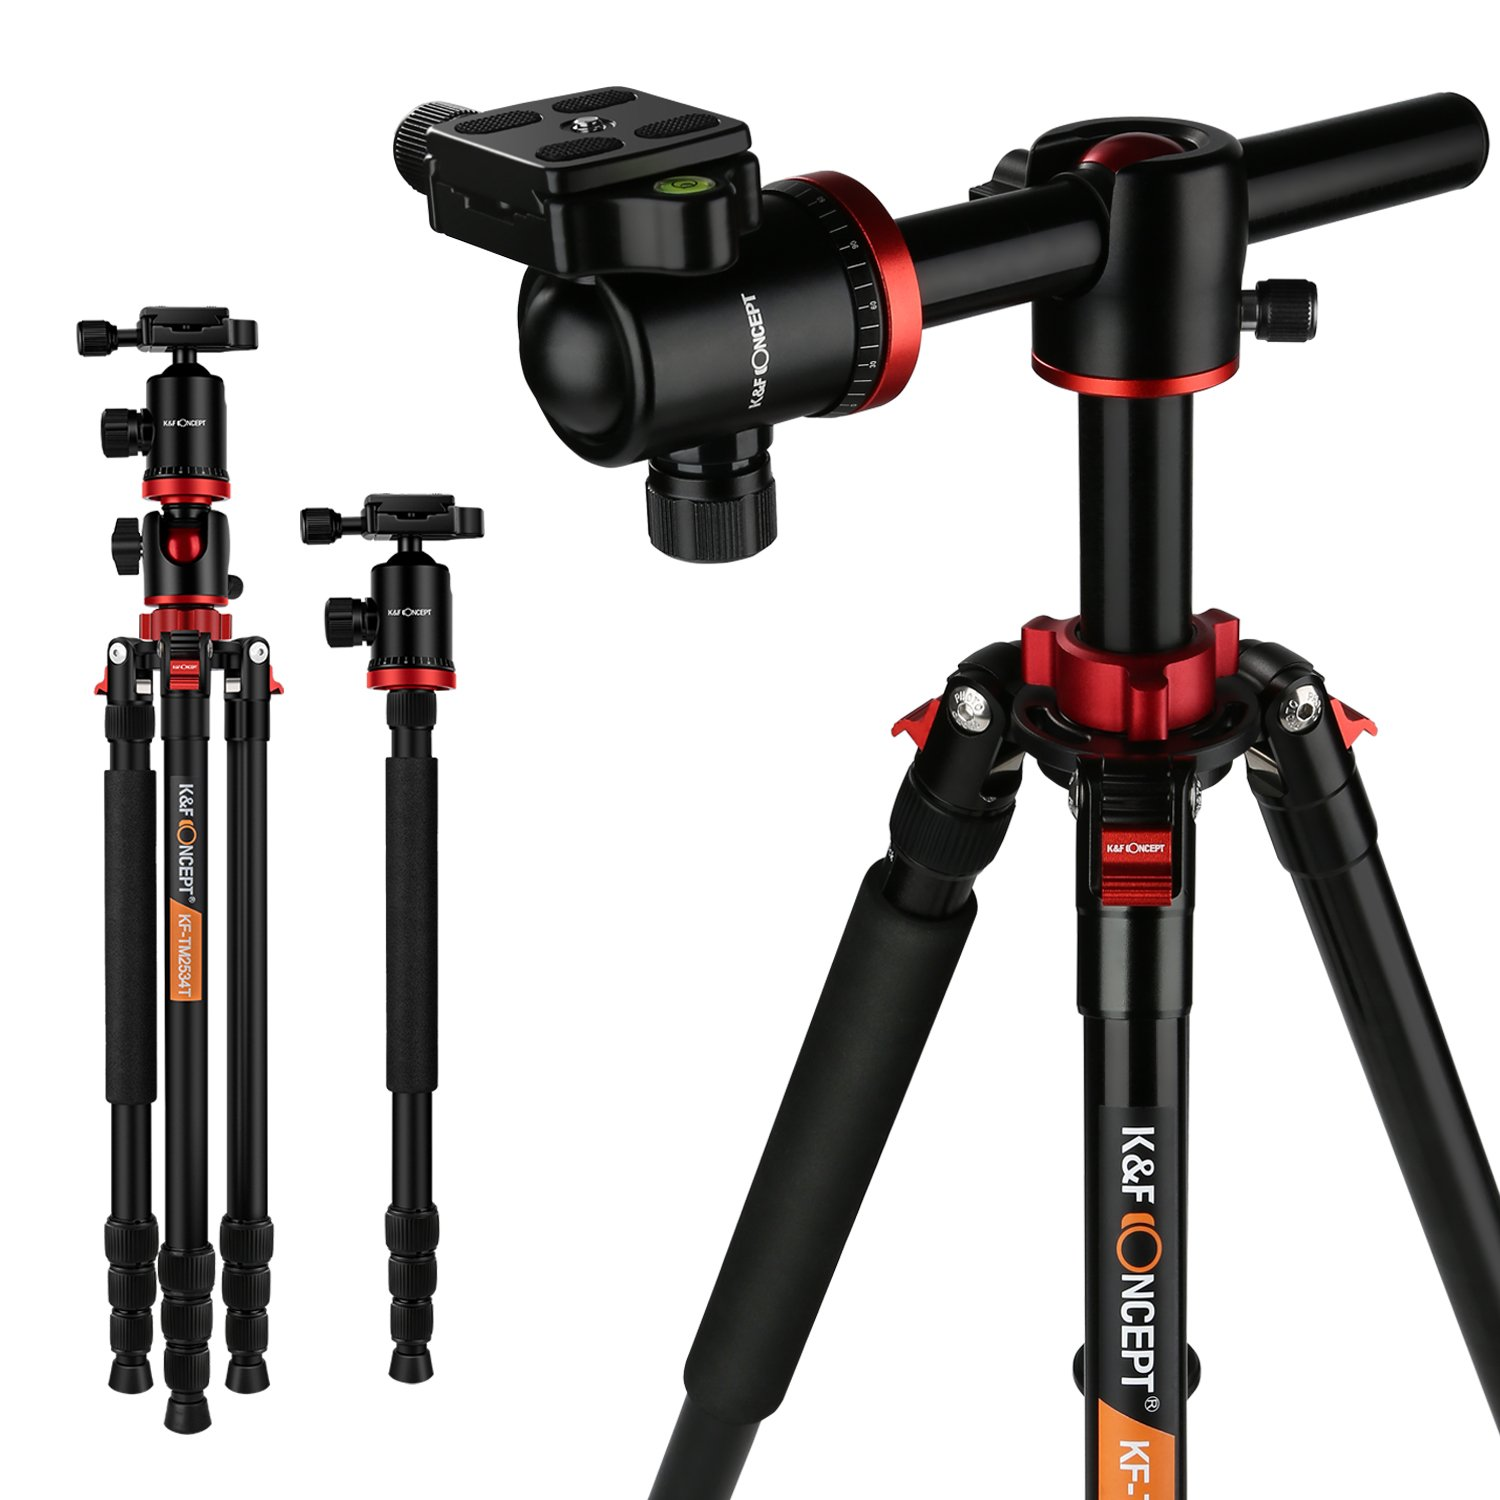 K&F Concept TM2534T DSLR Camera Tripod 66 Inch Portable Magnesium Aluminium Monopod 4 Section Professional Tripods with 360 Degree Ball Head Quick Release Plate Compatible with Canon Nikon Sony DSLR